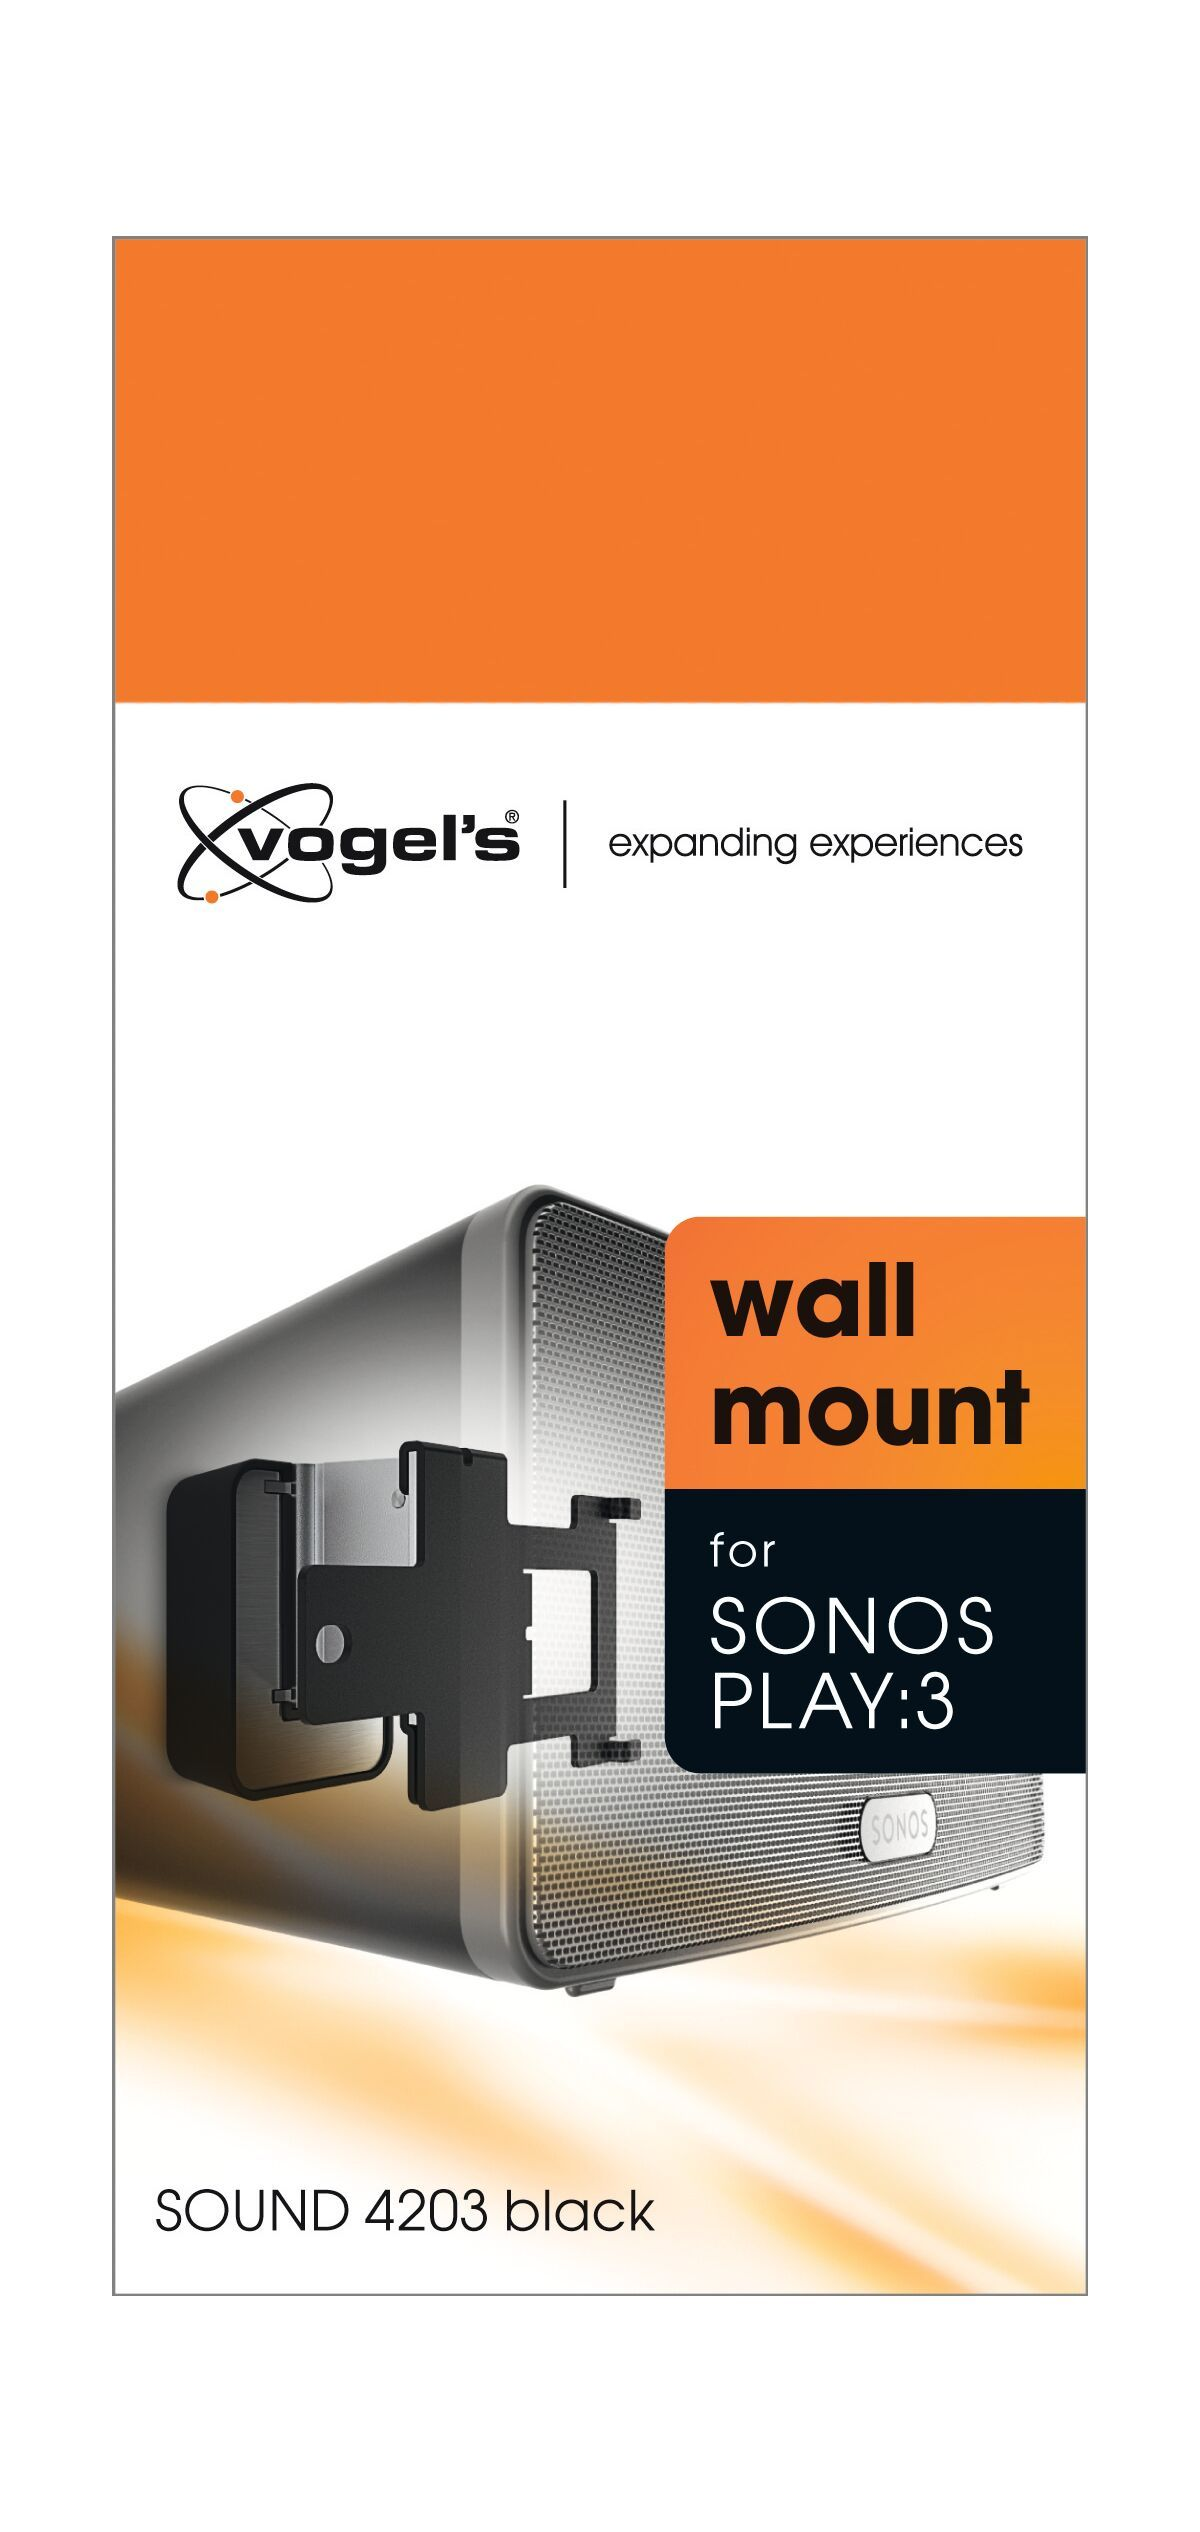 Vogel's SOUND 4203 Speaker Wall Mount for SONOS PLAY:3 (black) - Packaging front